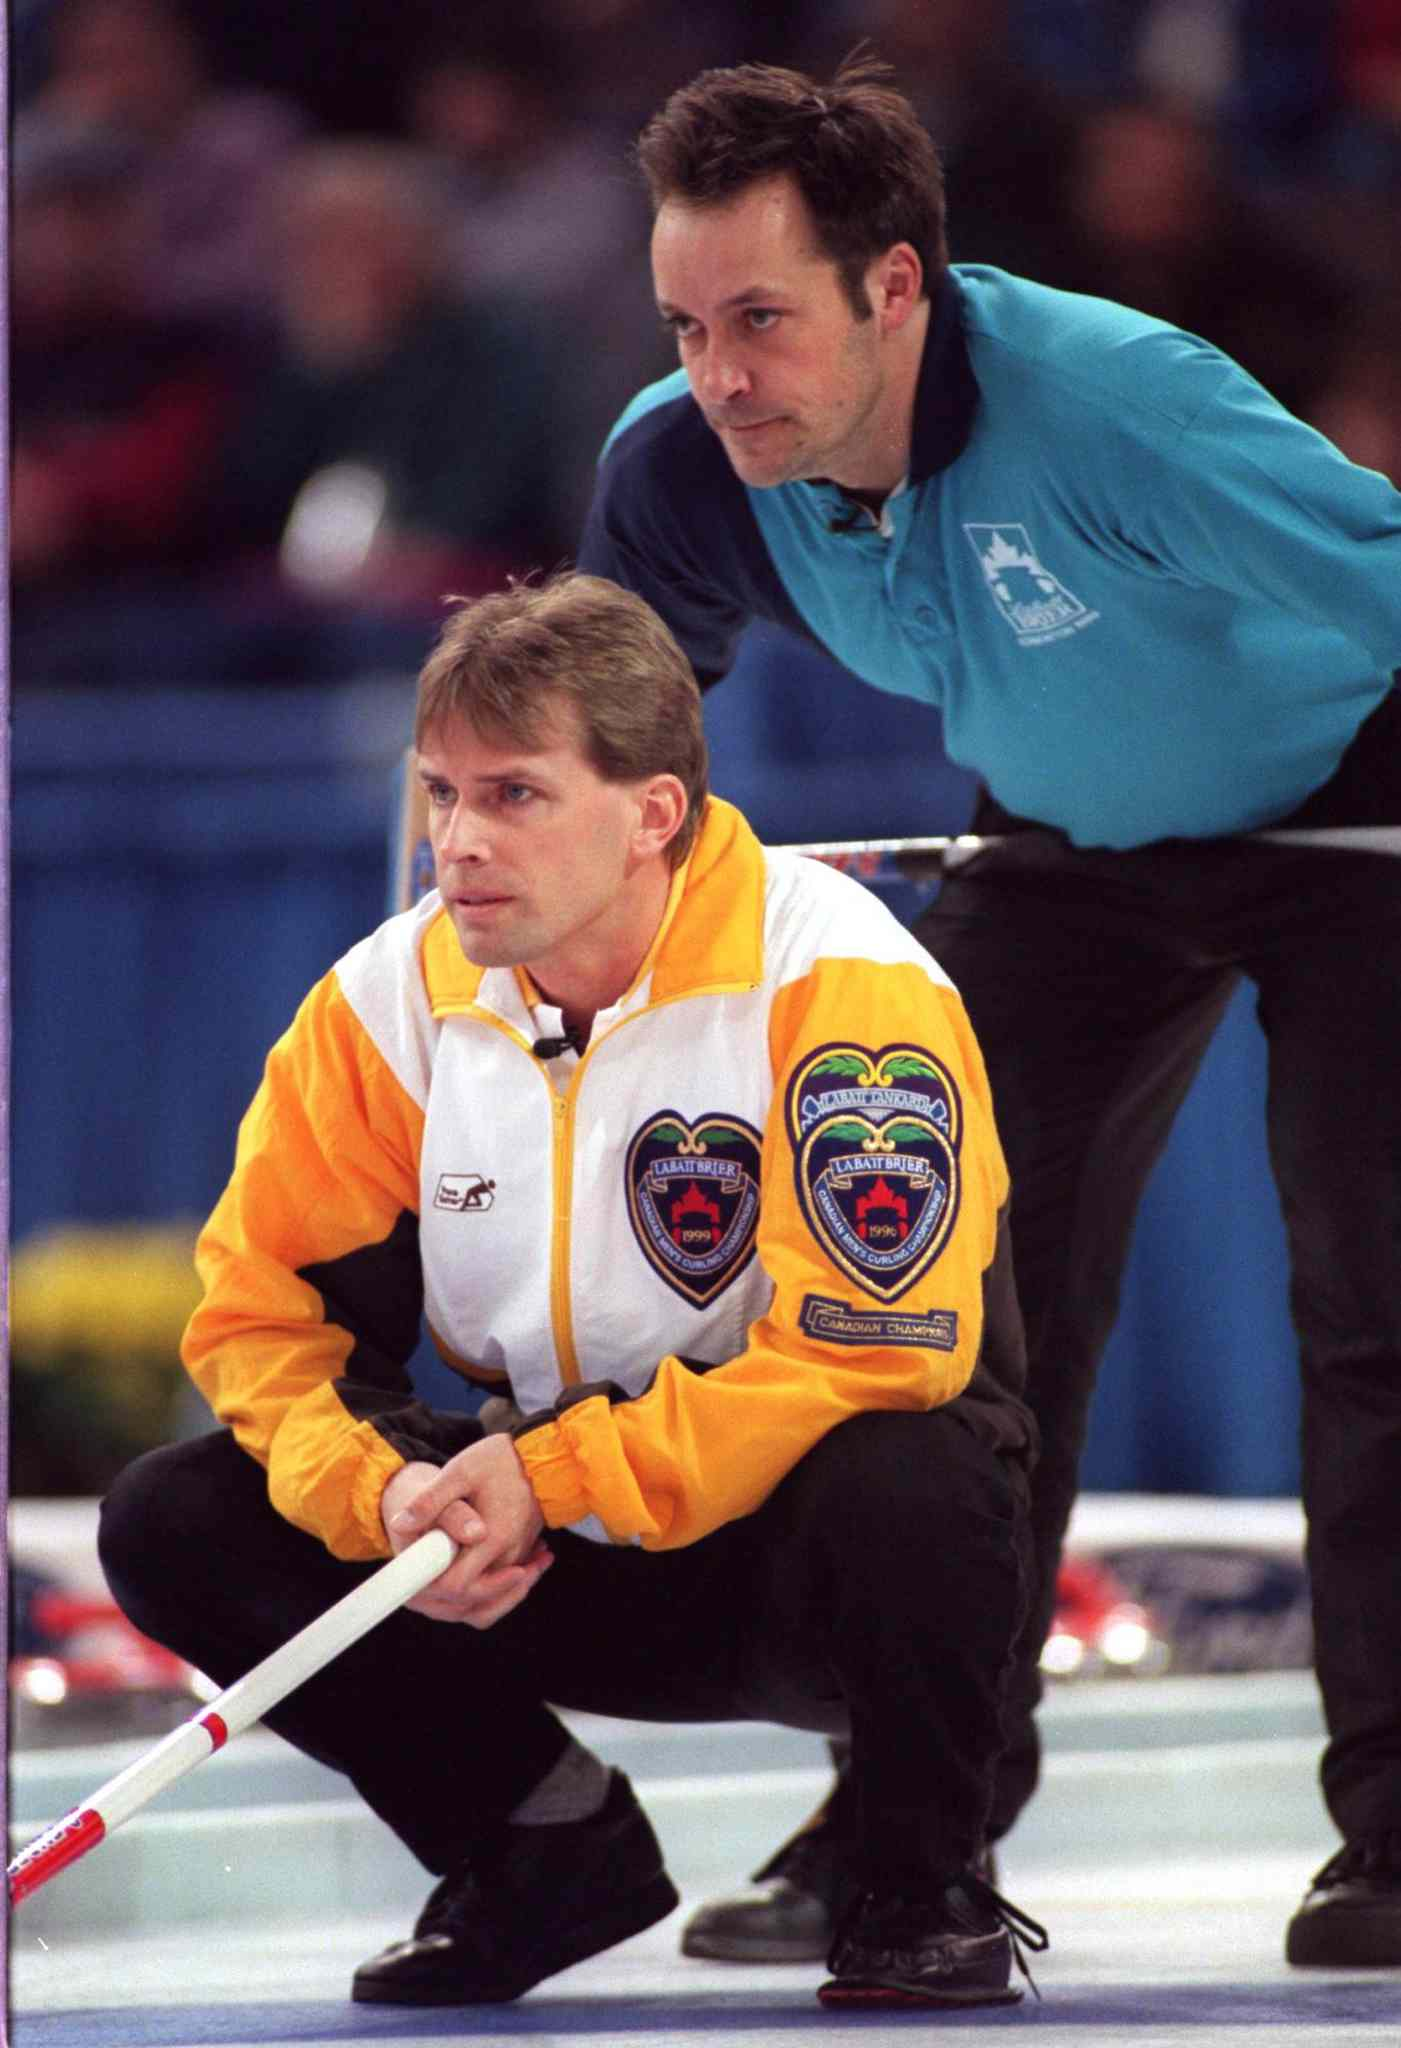 Quebec Skip Guy Hemmings looks over Manitoba Skip Jeff Stoughton's shoulder during the final of the 1999 Brier in Edmonton.